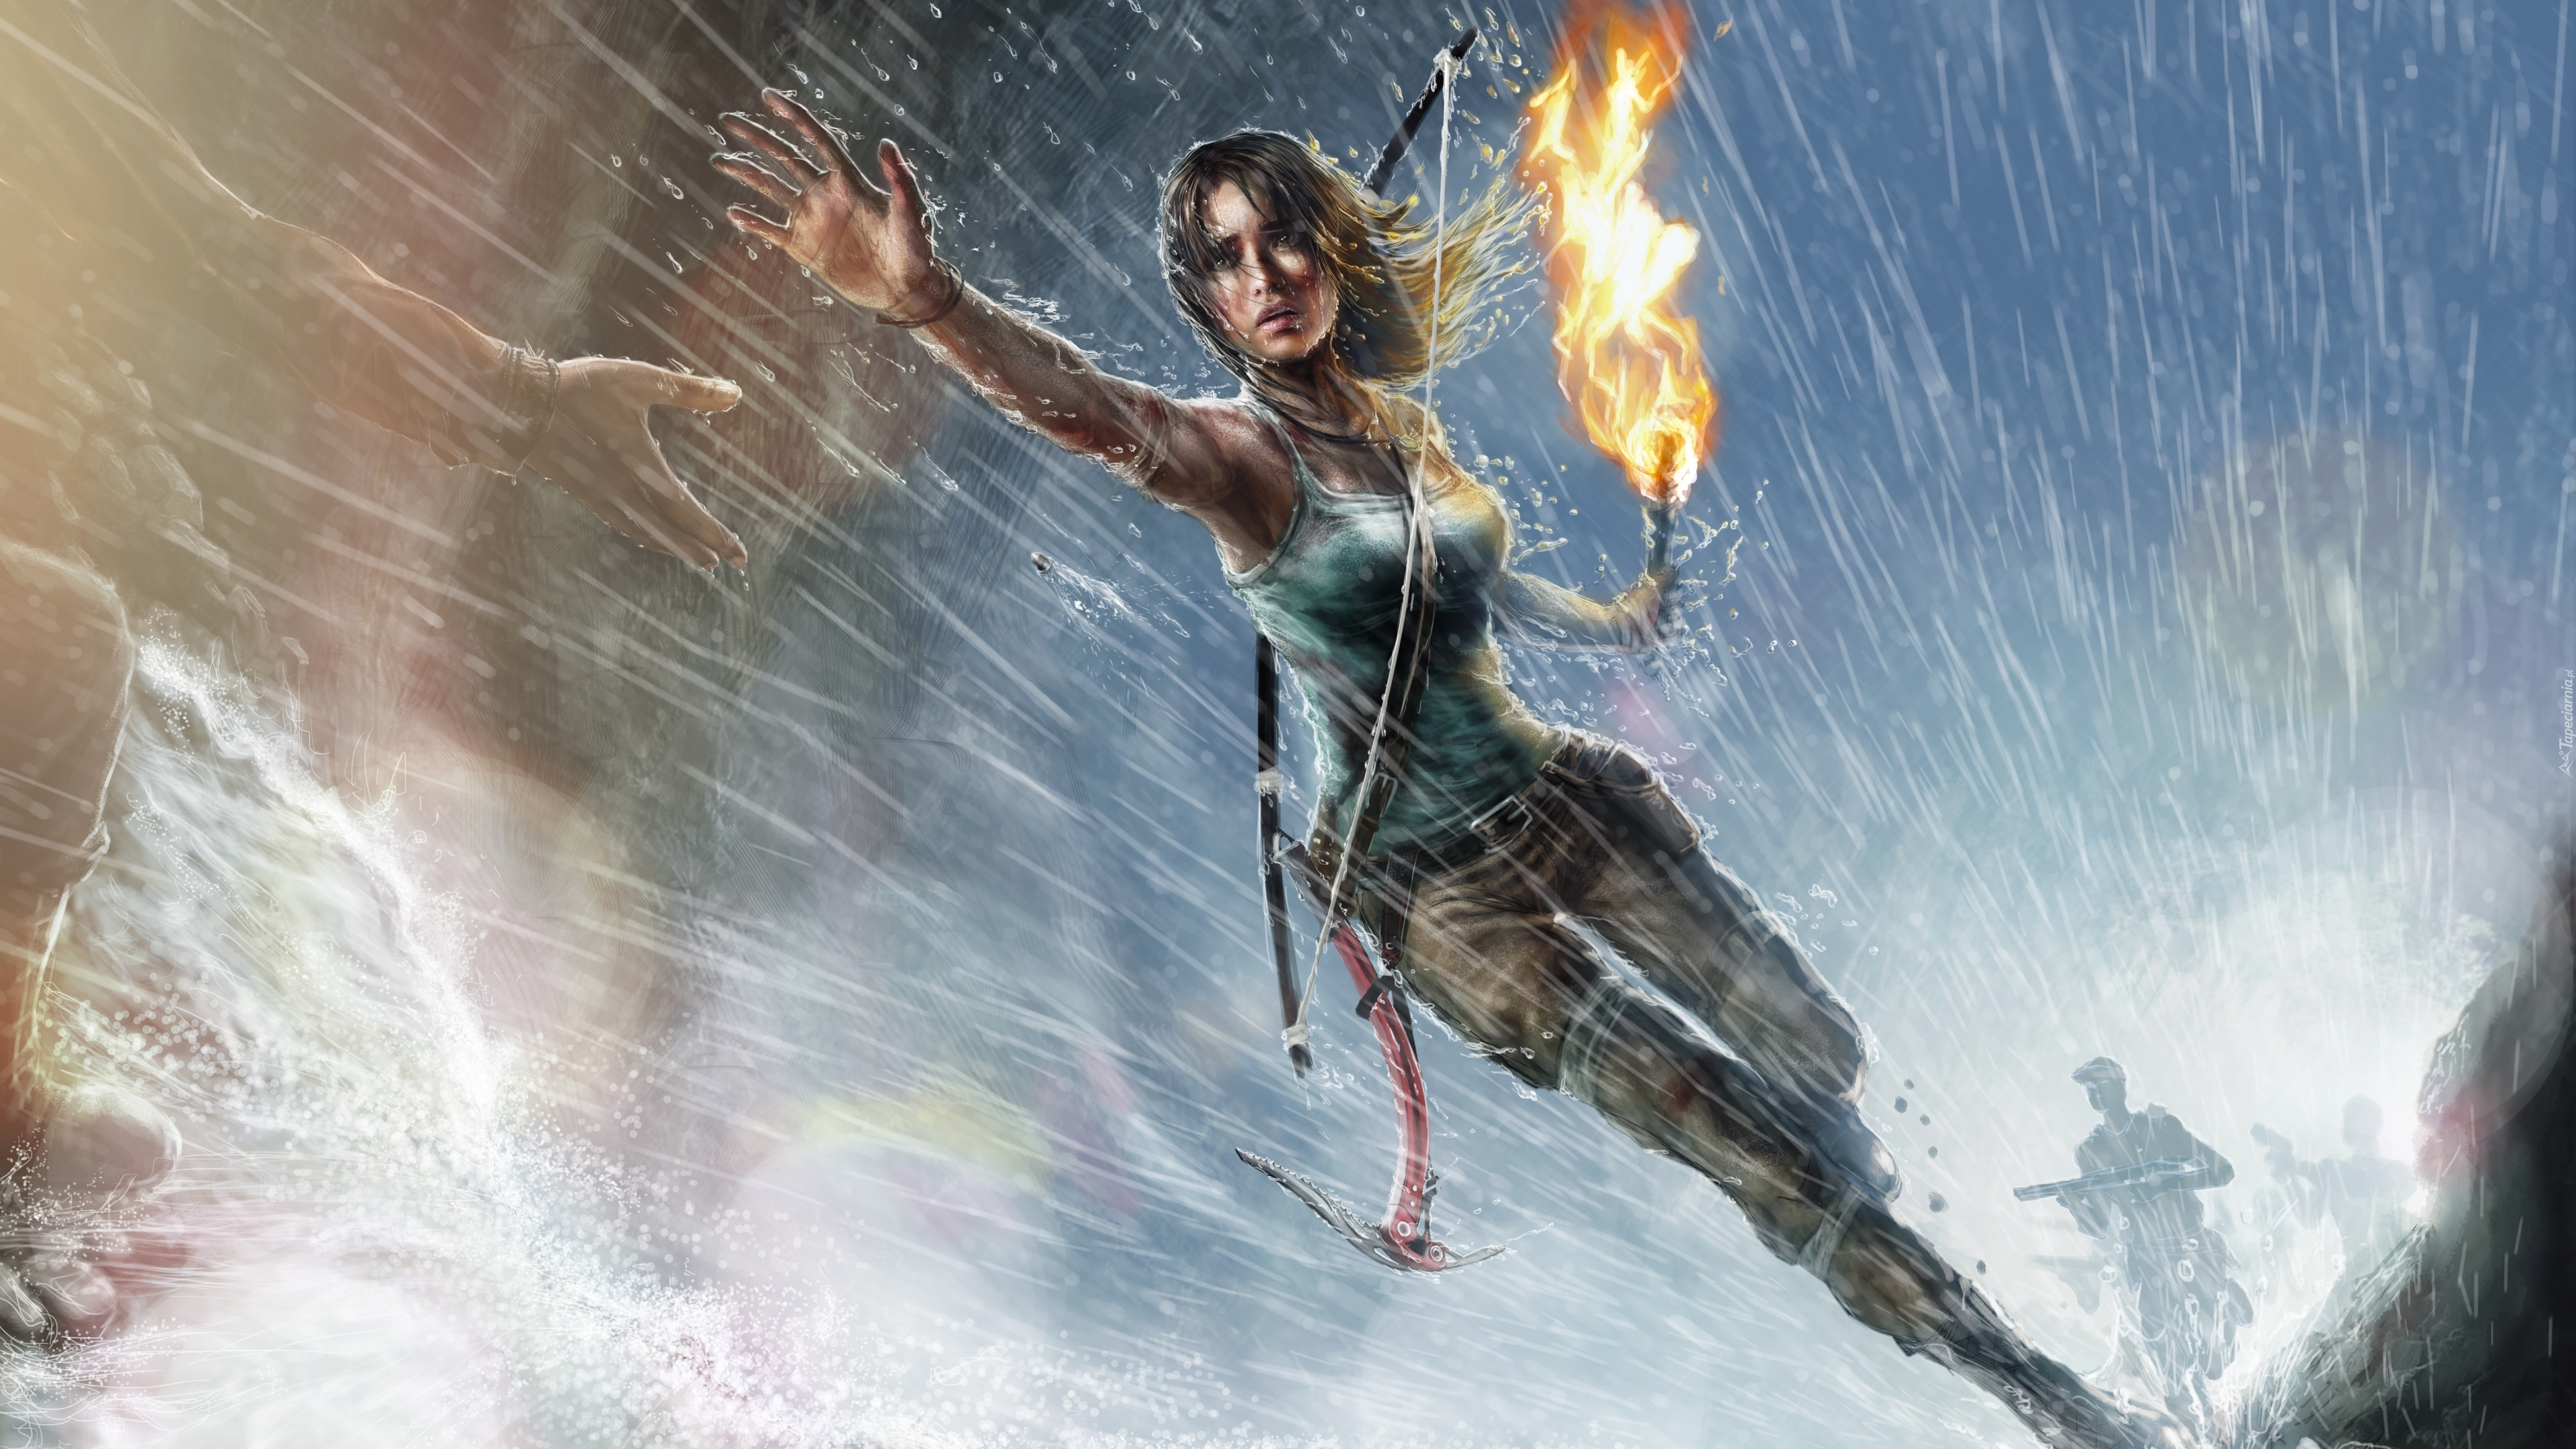 Gra, Rise of the Tomb Raider, Lara Croft, Ręka, Pochodnia, Łuk